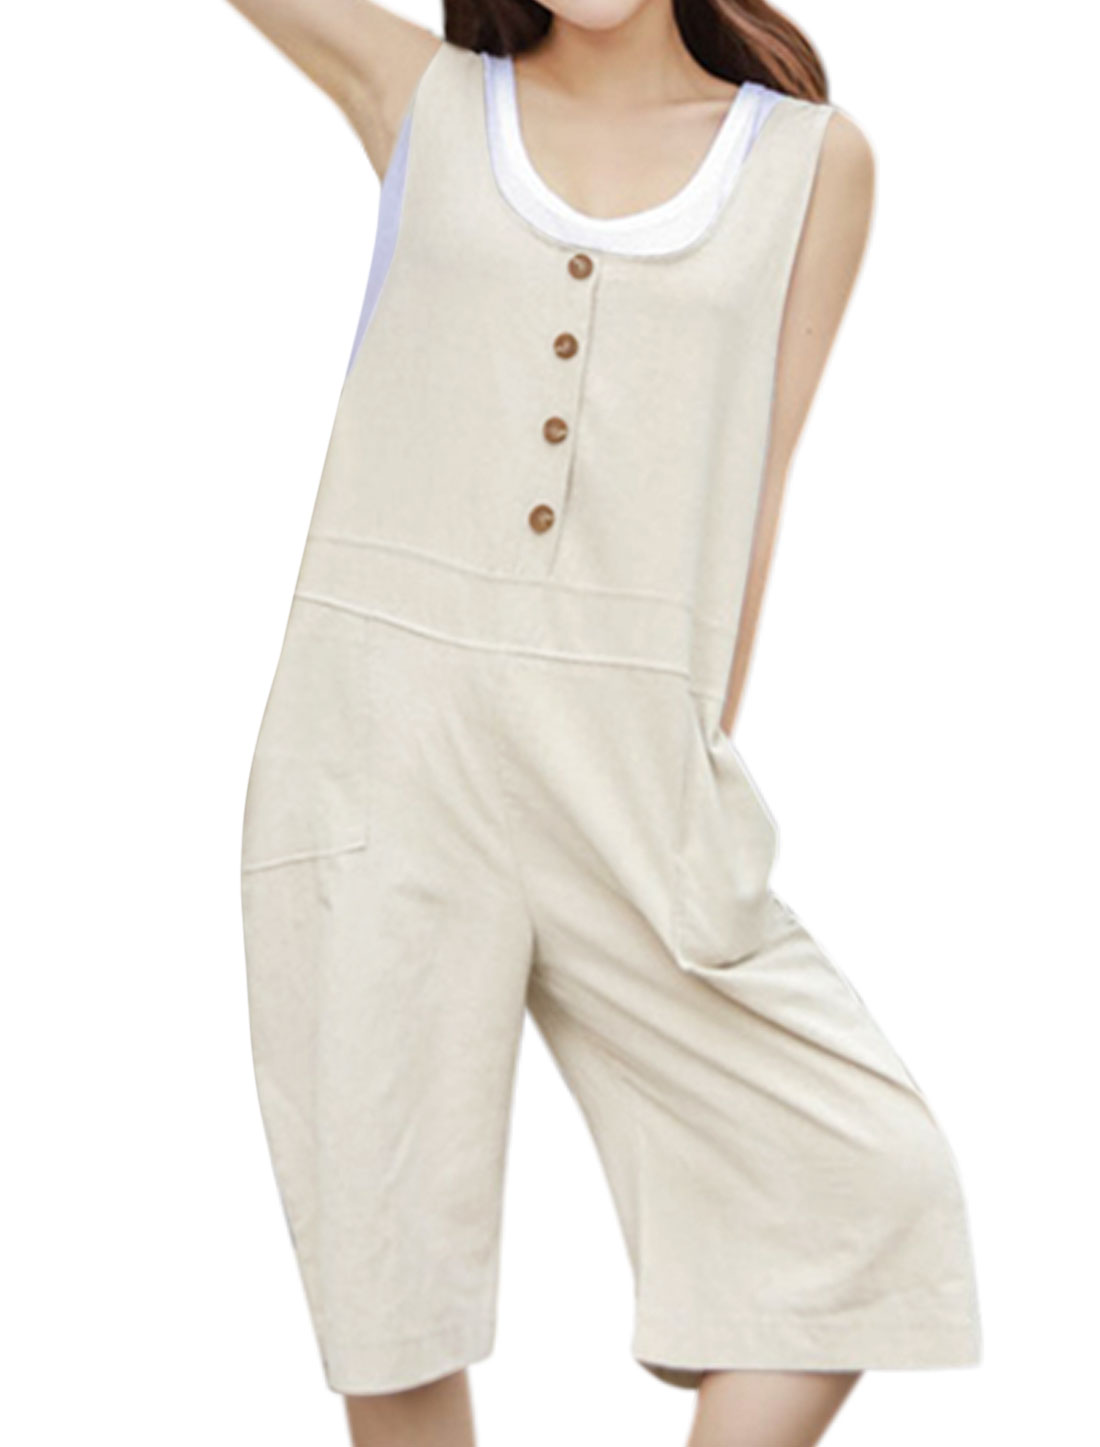 Women U Neck Button Decor Wide Legs Half Suspender Pants Ivory M